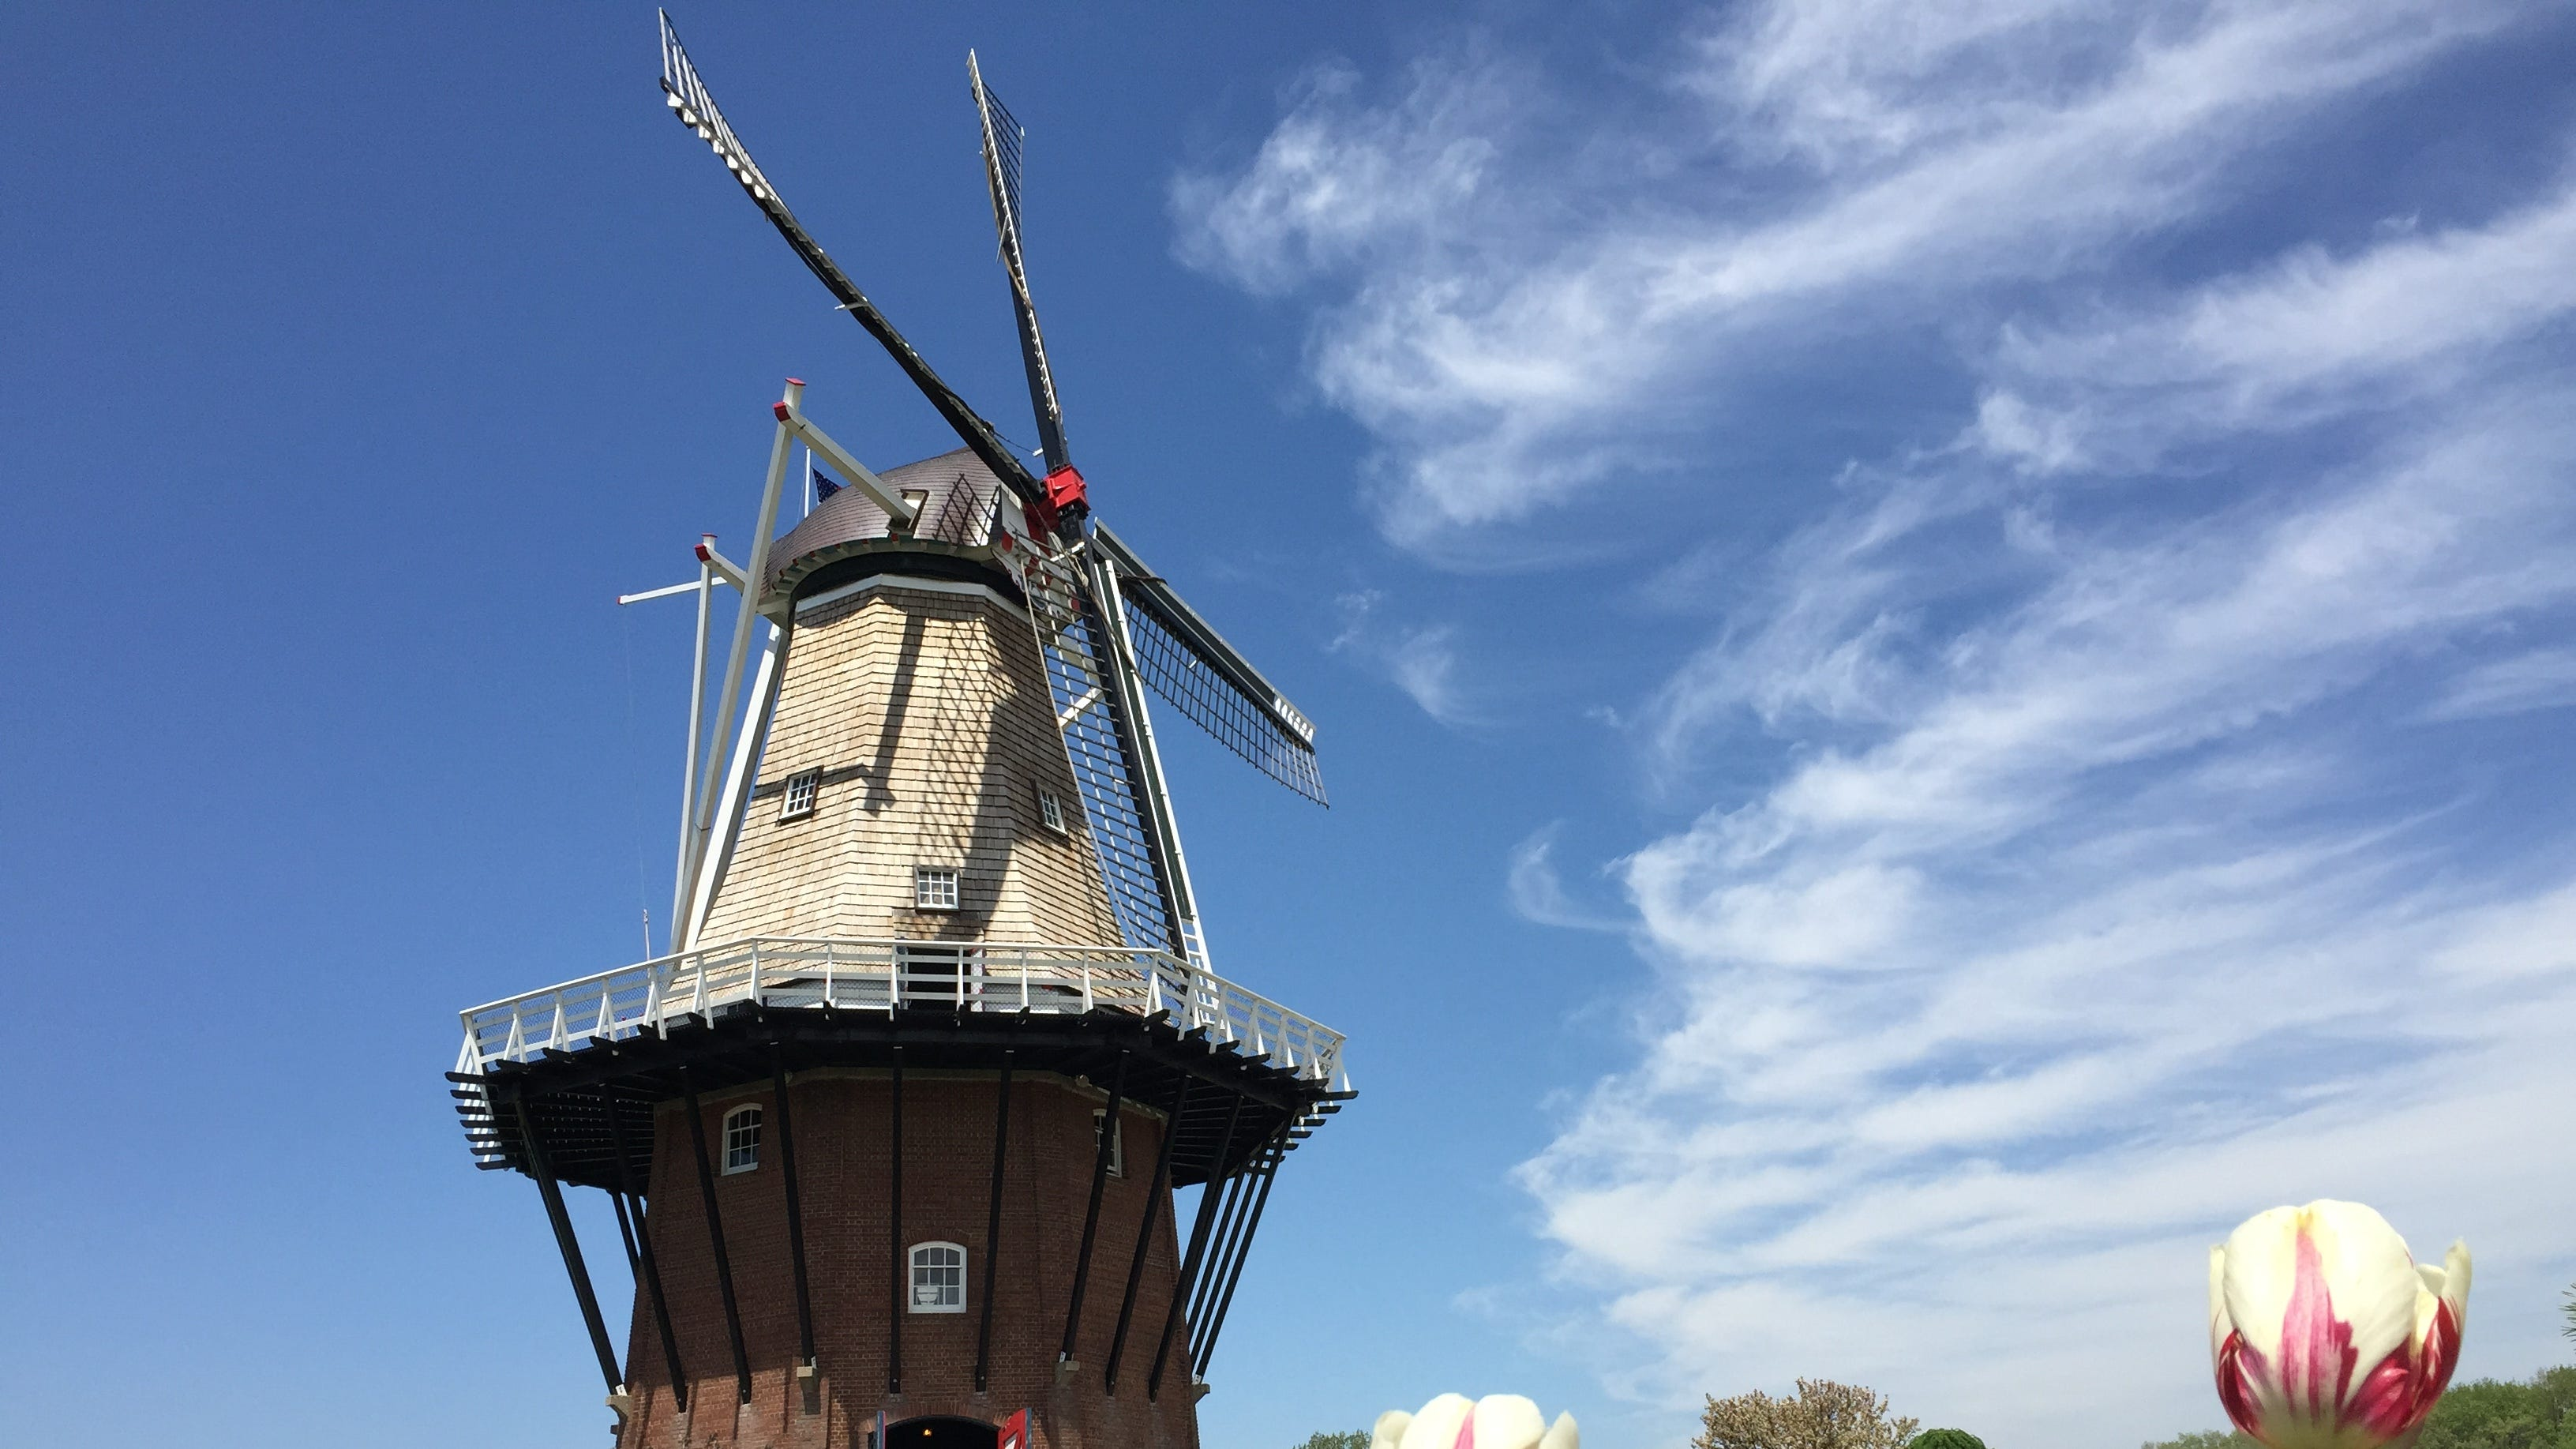 Holland is America's best small city to start a business, study says